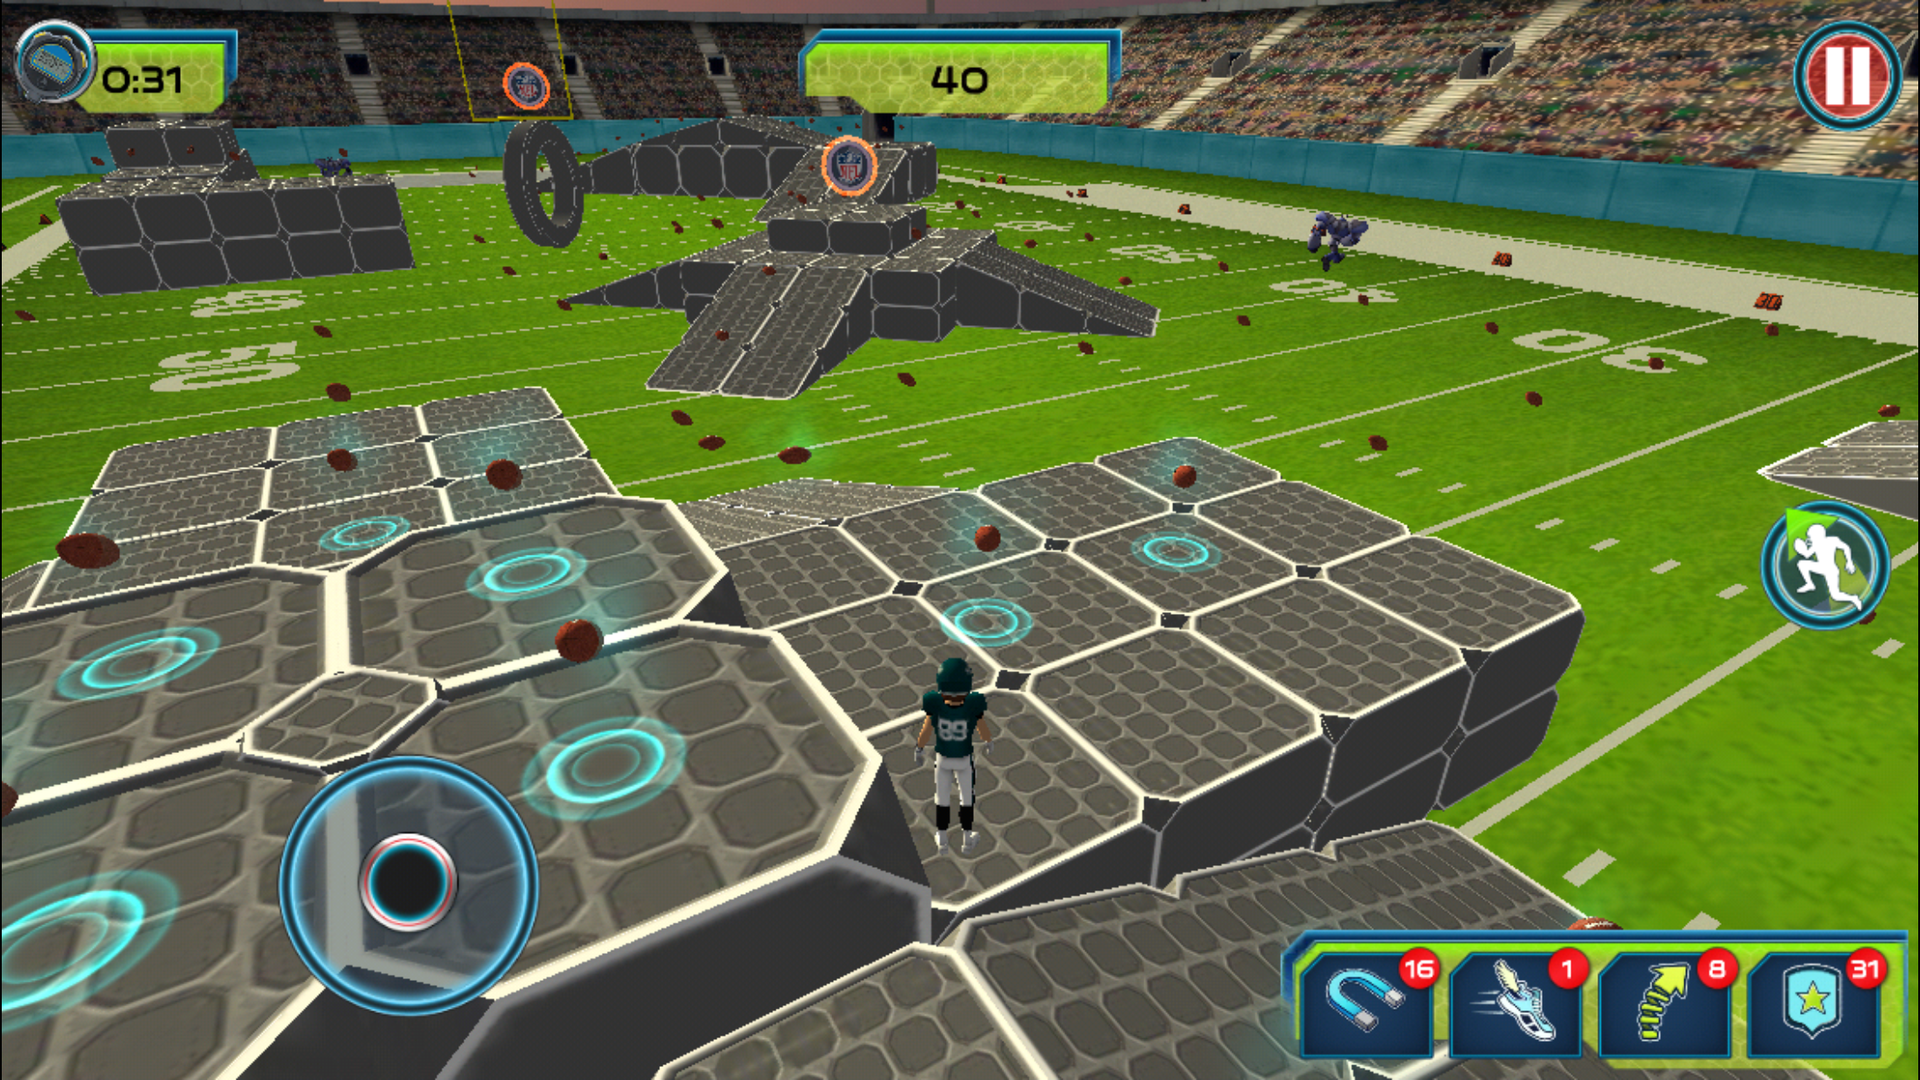 3. Players can collect shield coins to turn themselves large.